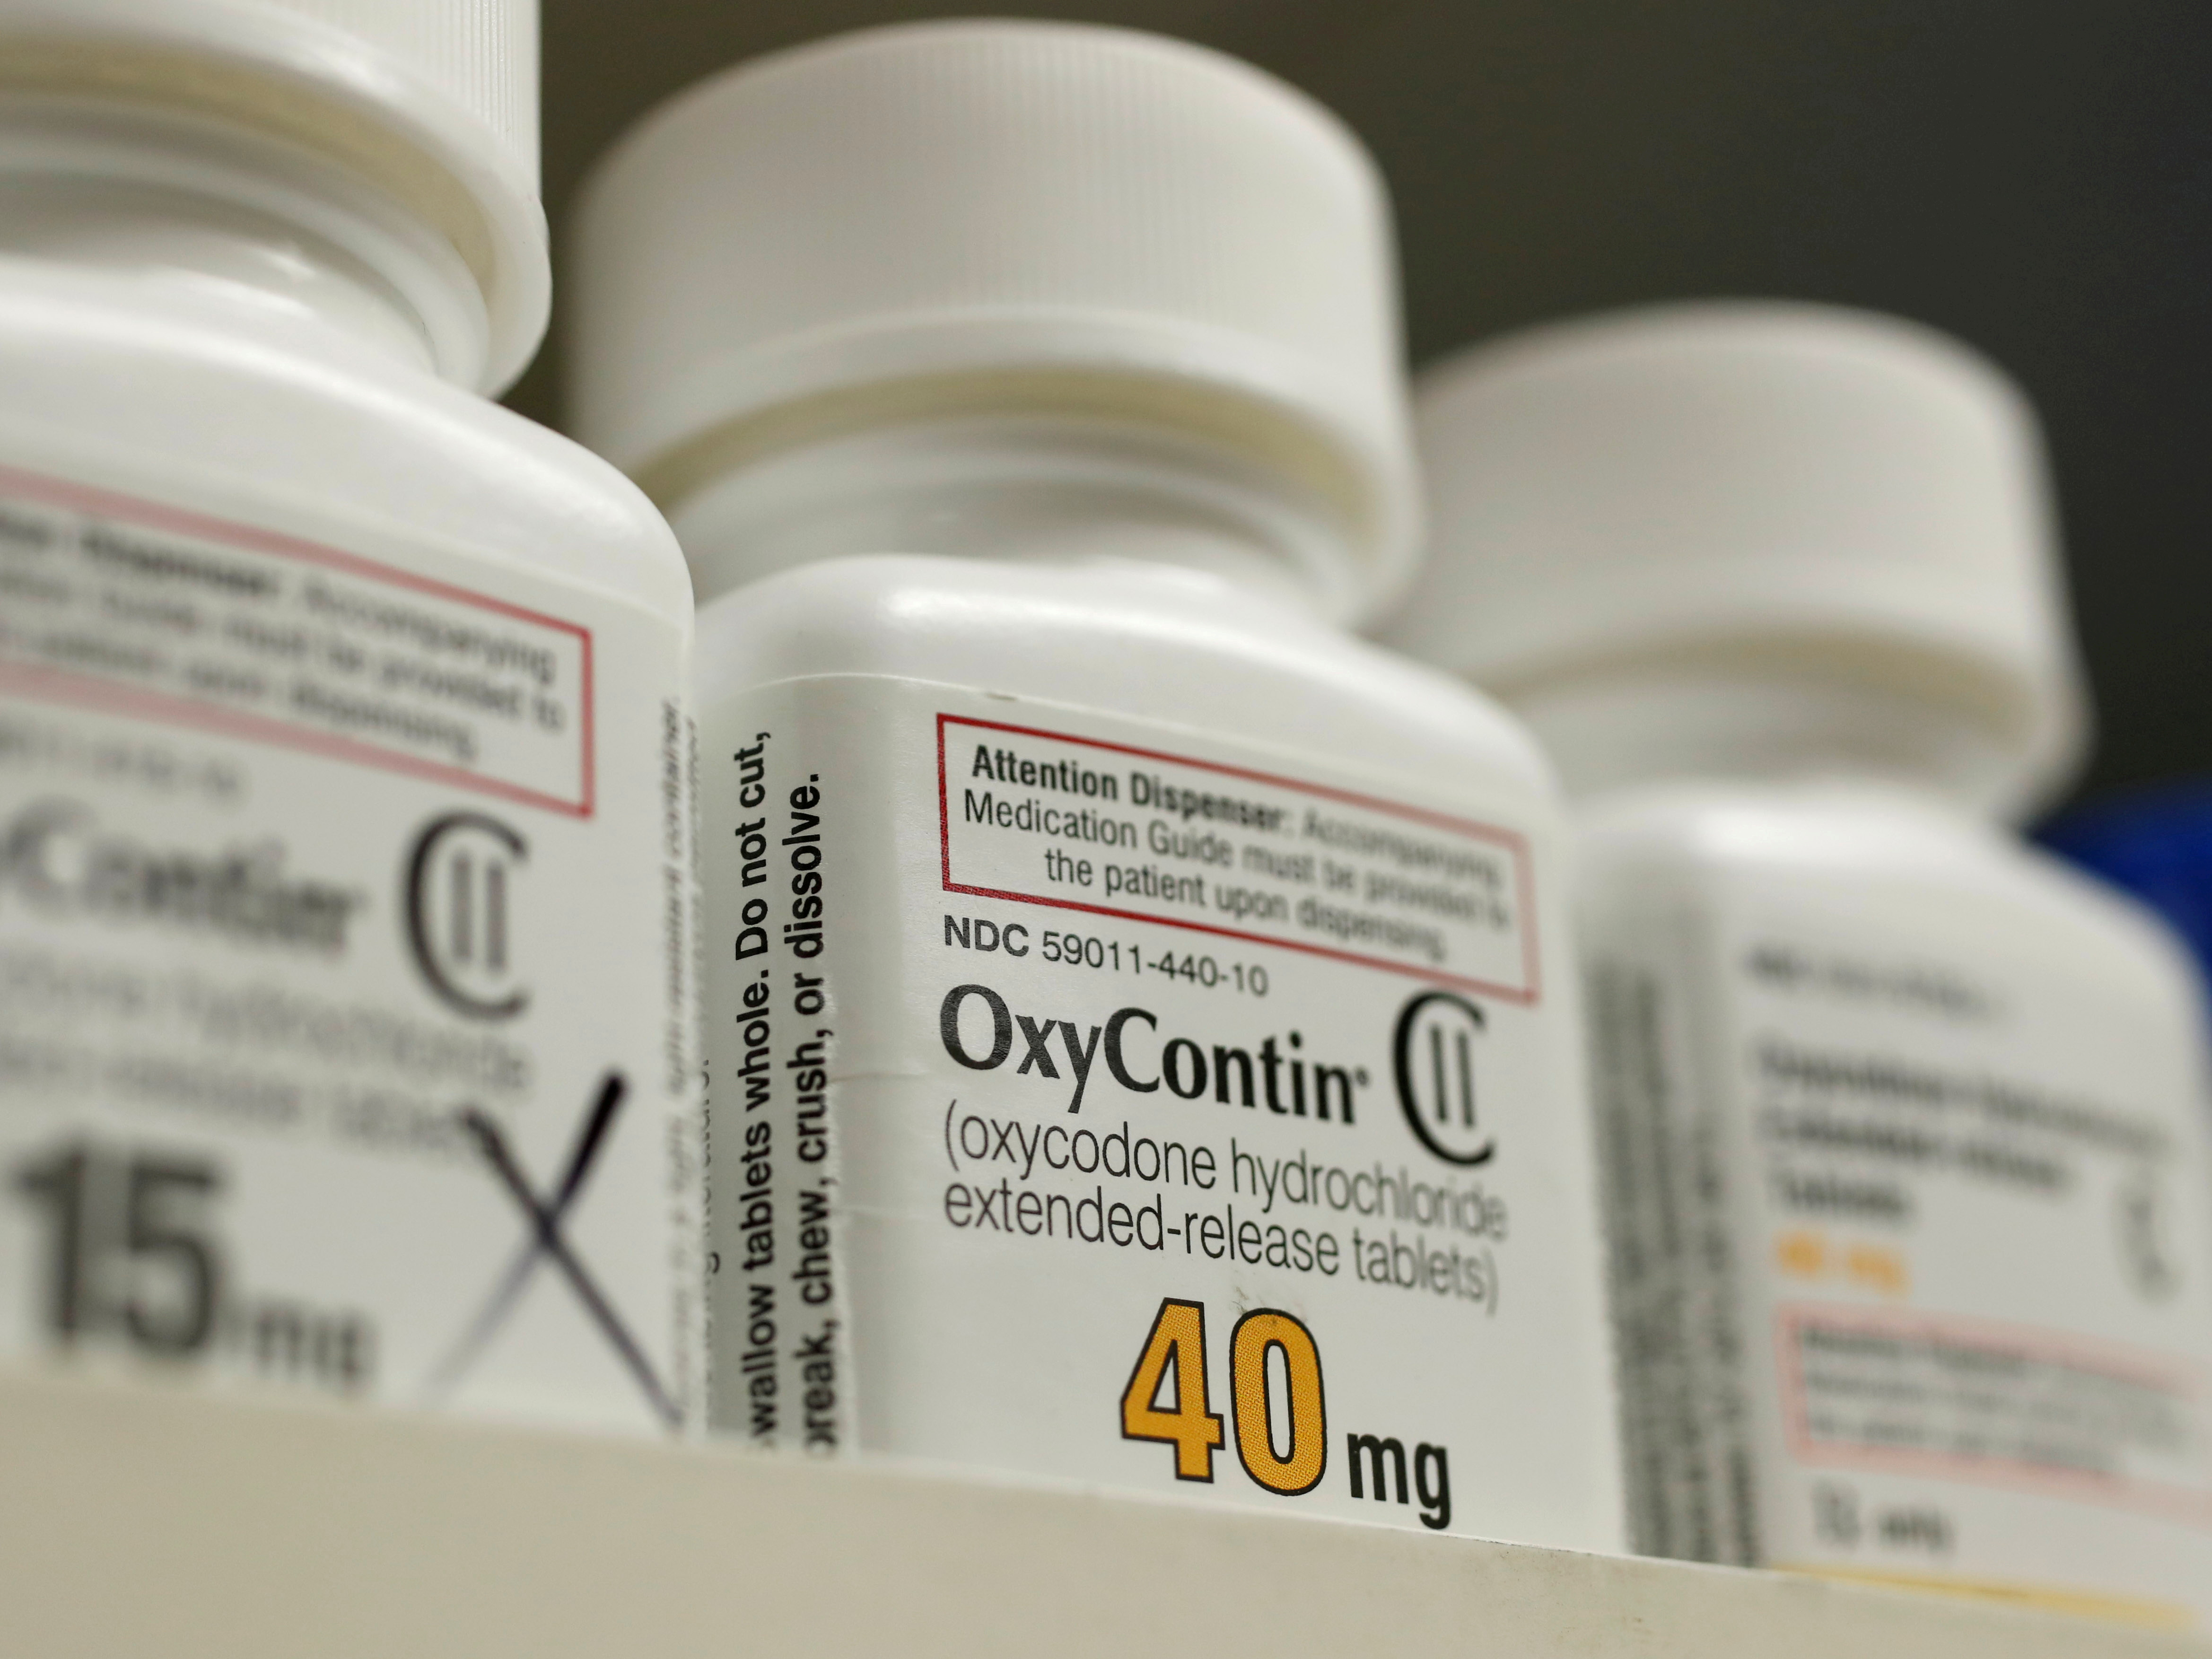 Bottles of prescription painkiller OxyContin, 40mg pills, made by Purdue Pharma L.D. sit on a shelf at a local pharmacy, in Provo, Utah, U.S., April 25, 2017. REUTERS/George Frey/File Photo